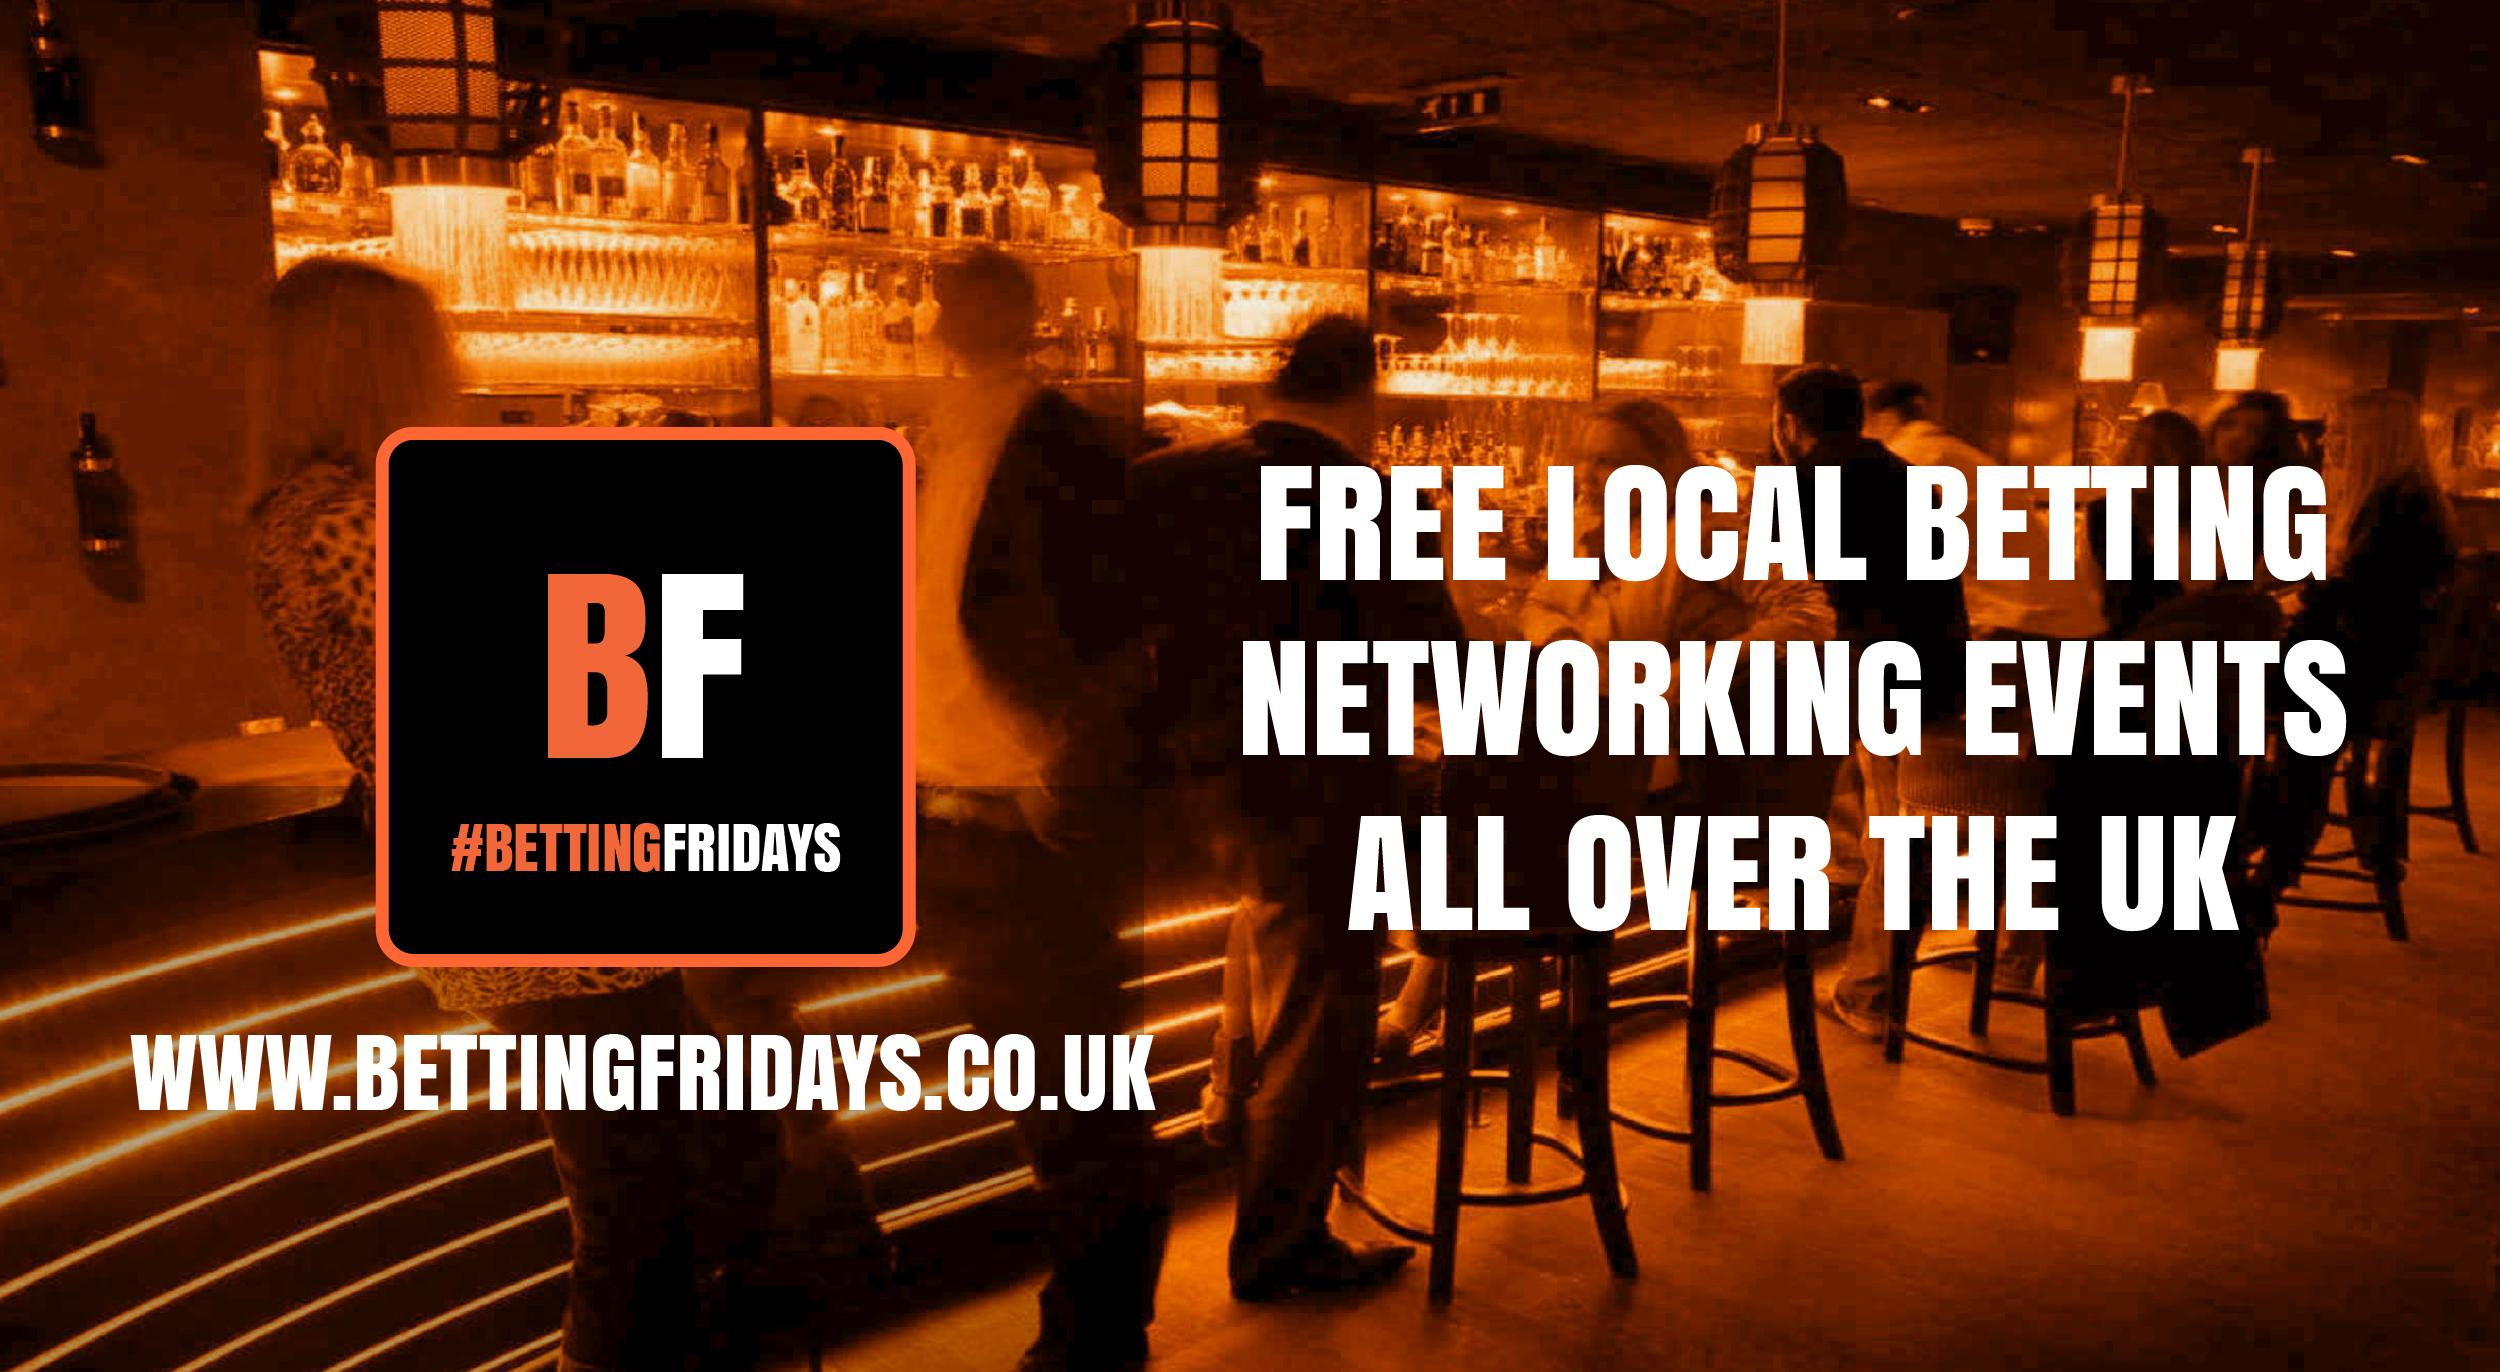 Betting Fridays! Free betting networking event in Loughborough